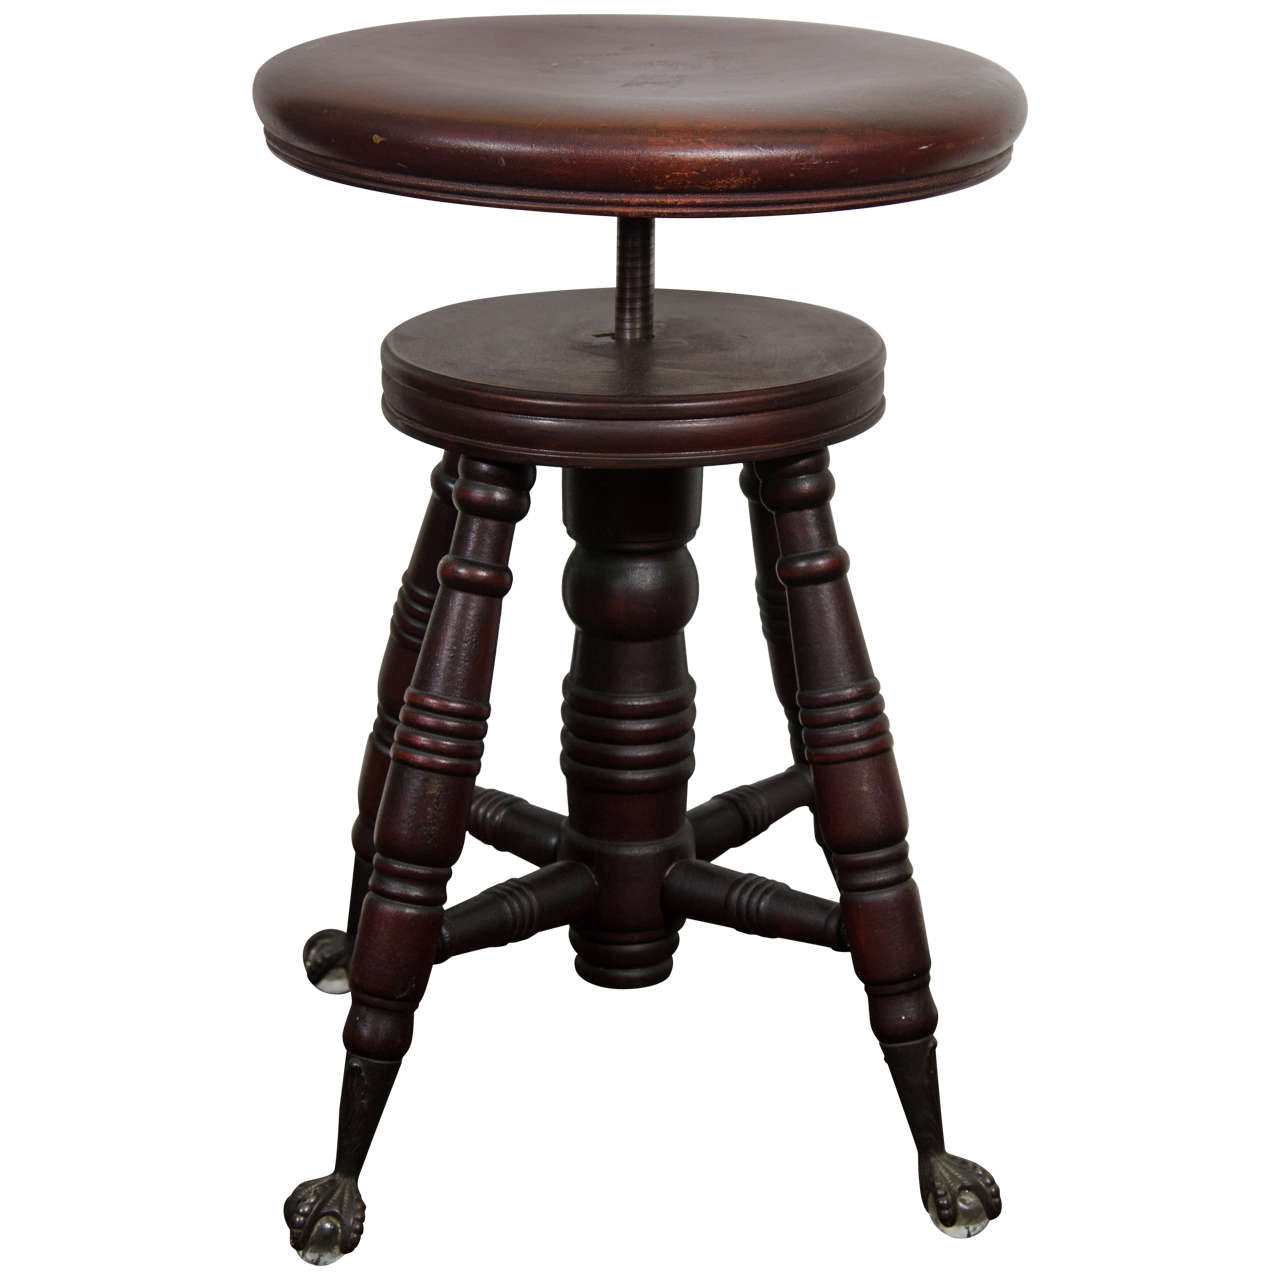 Antique mahogany turned wood adjustable piano stool at stdibs